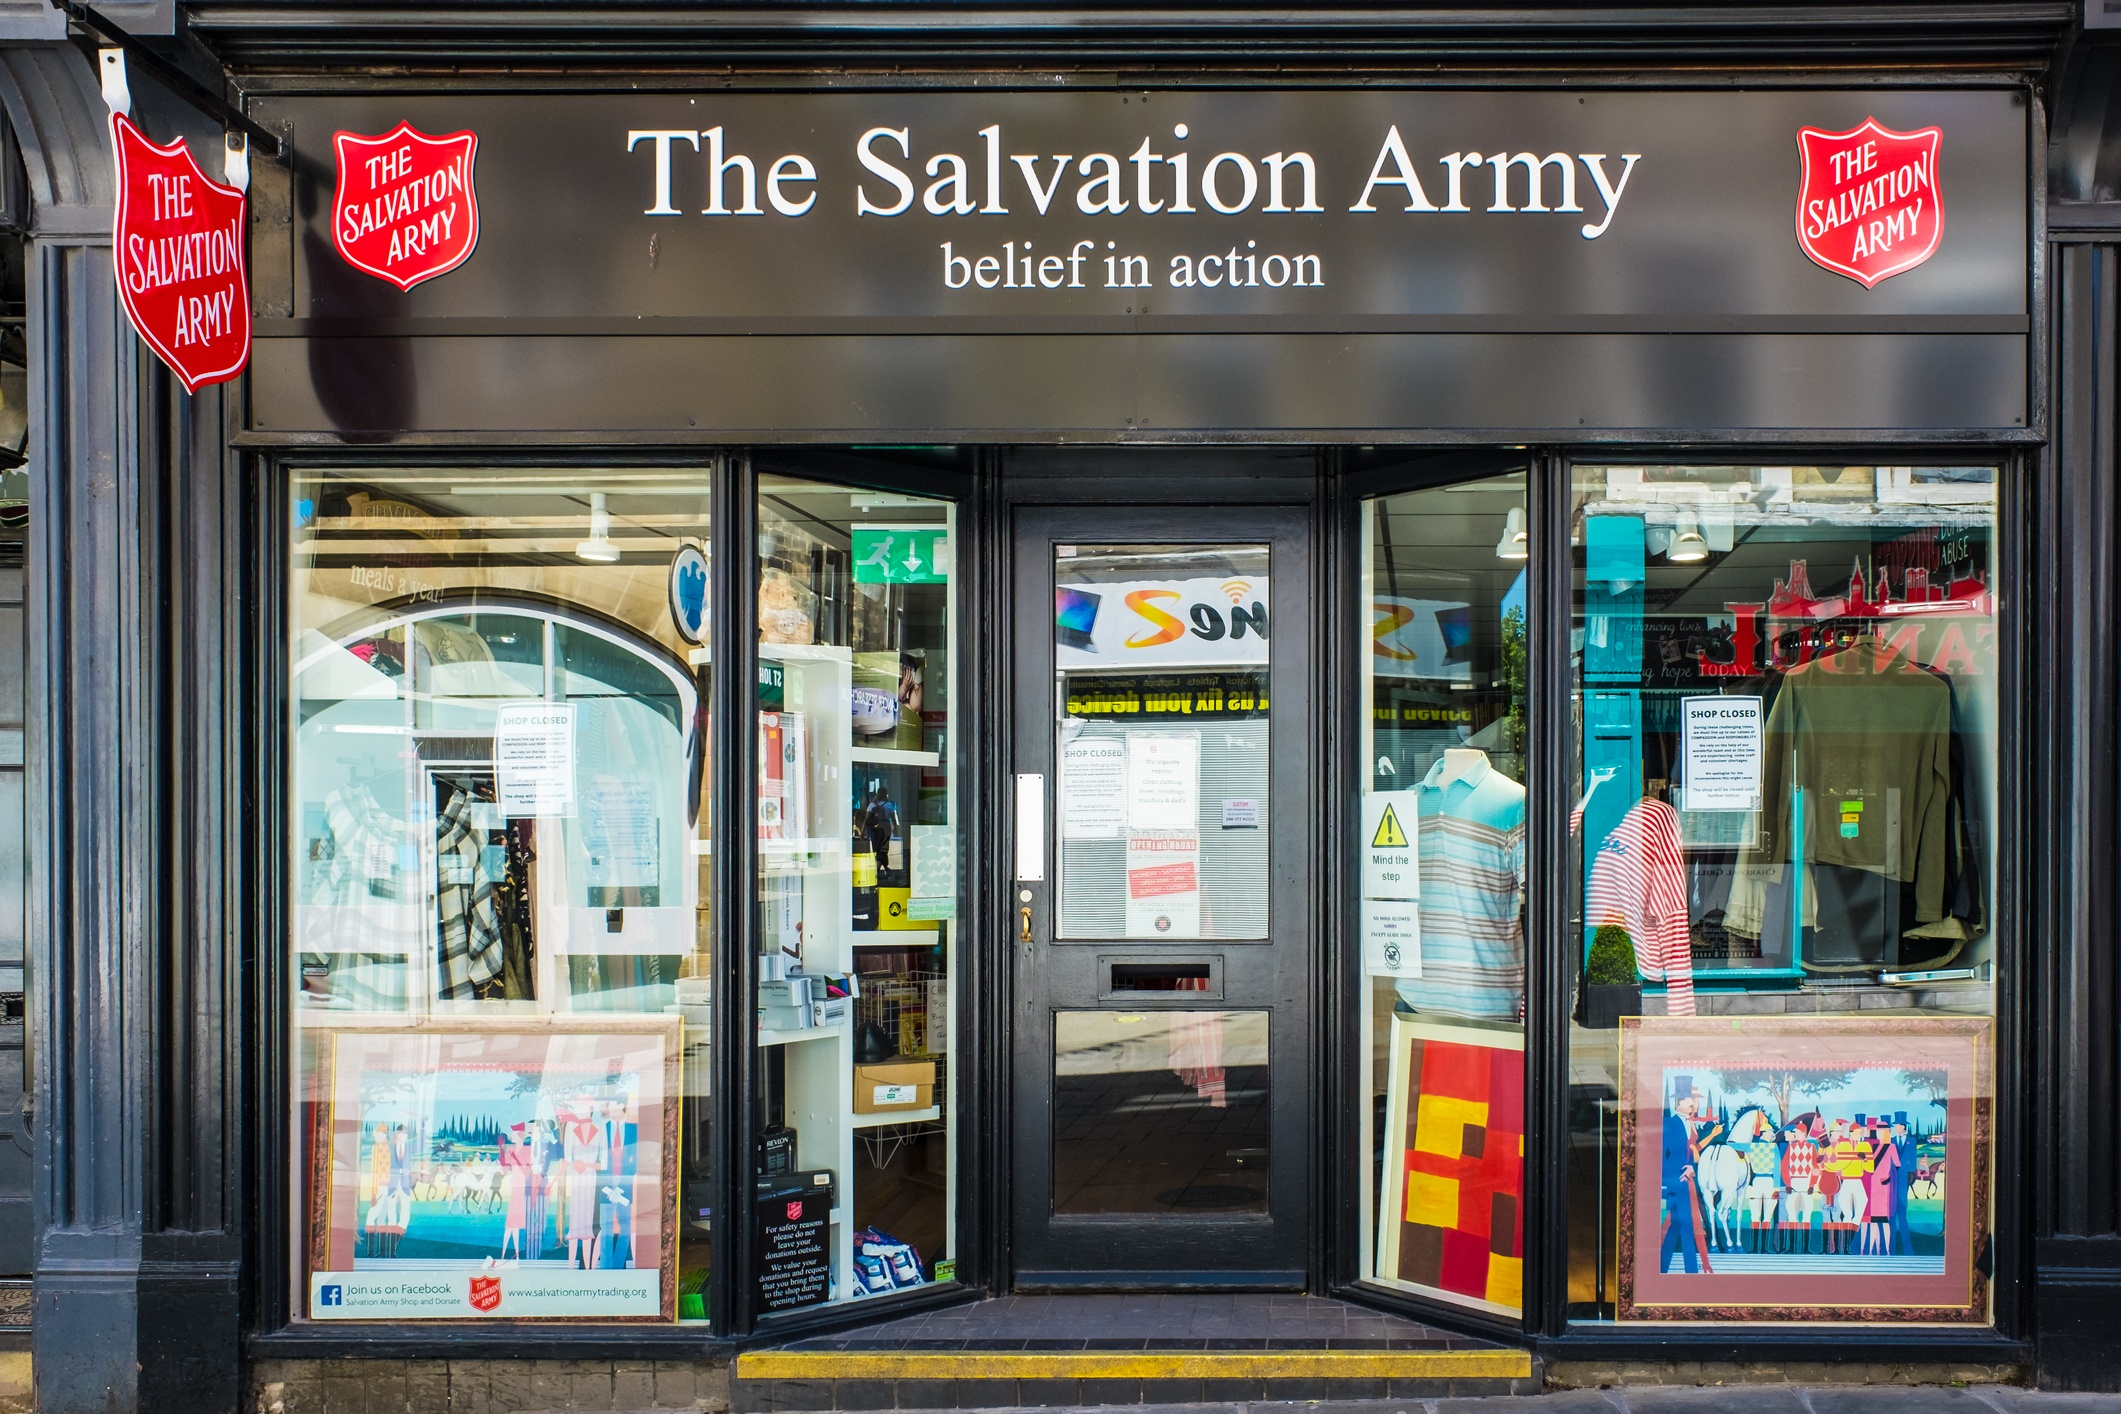 Gift Aid Solution raises £750,000 in additional revenue for The Salvation Army